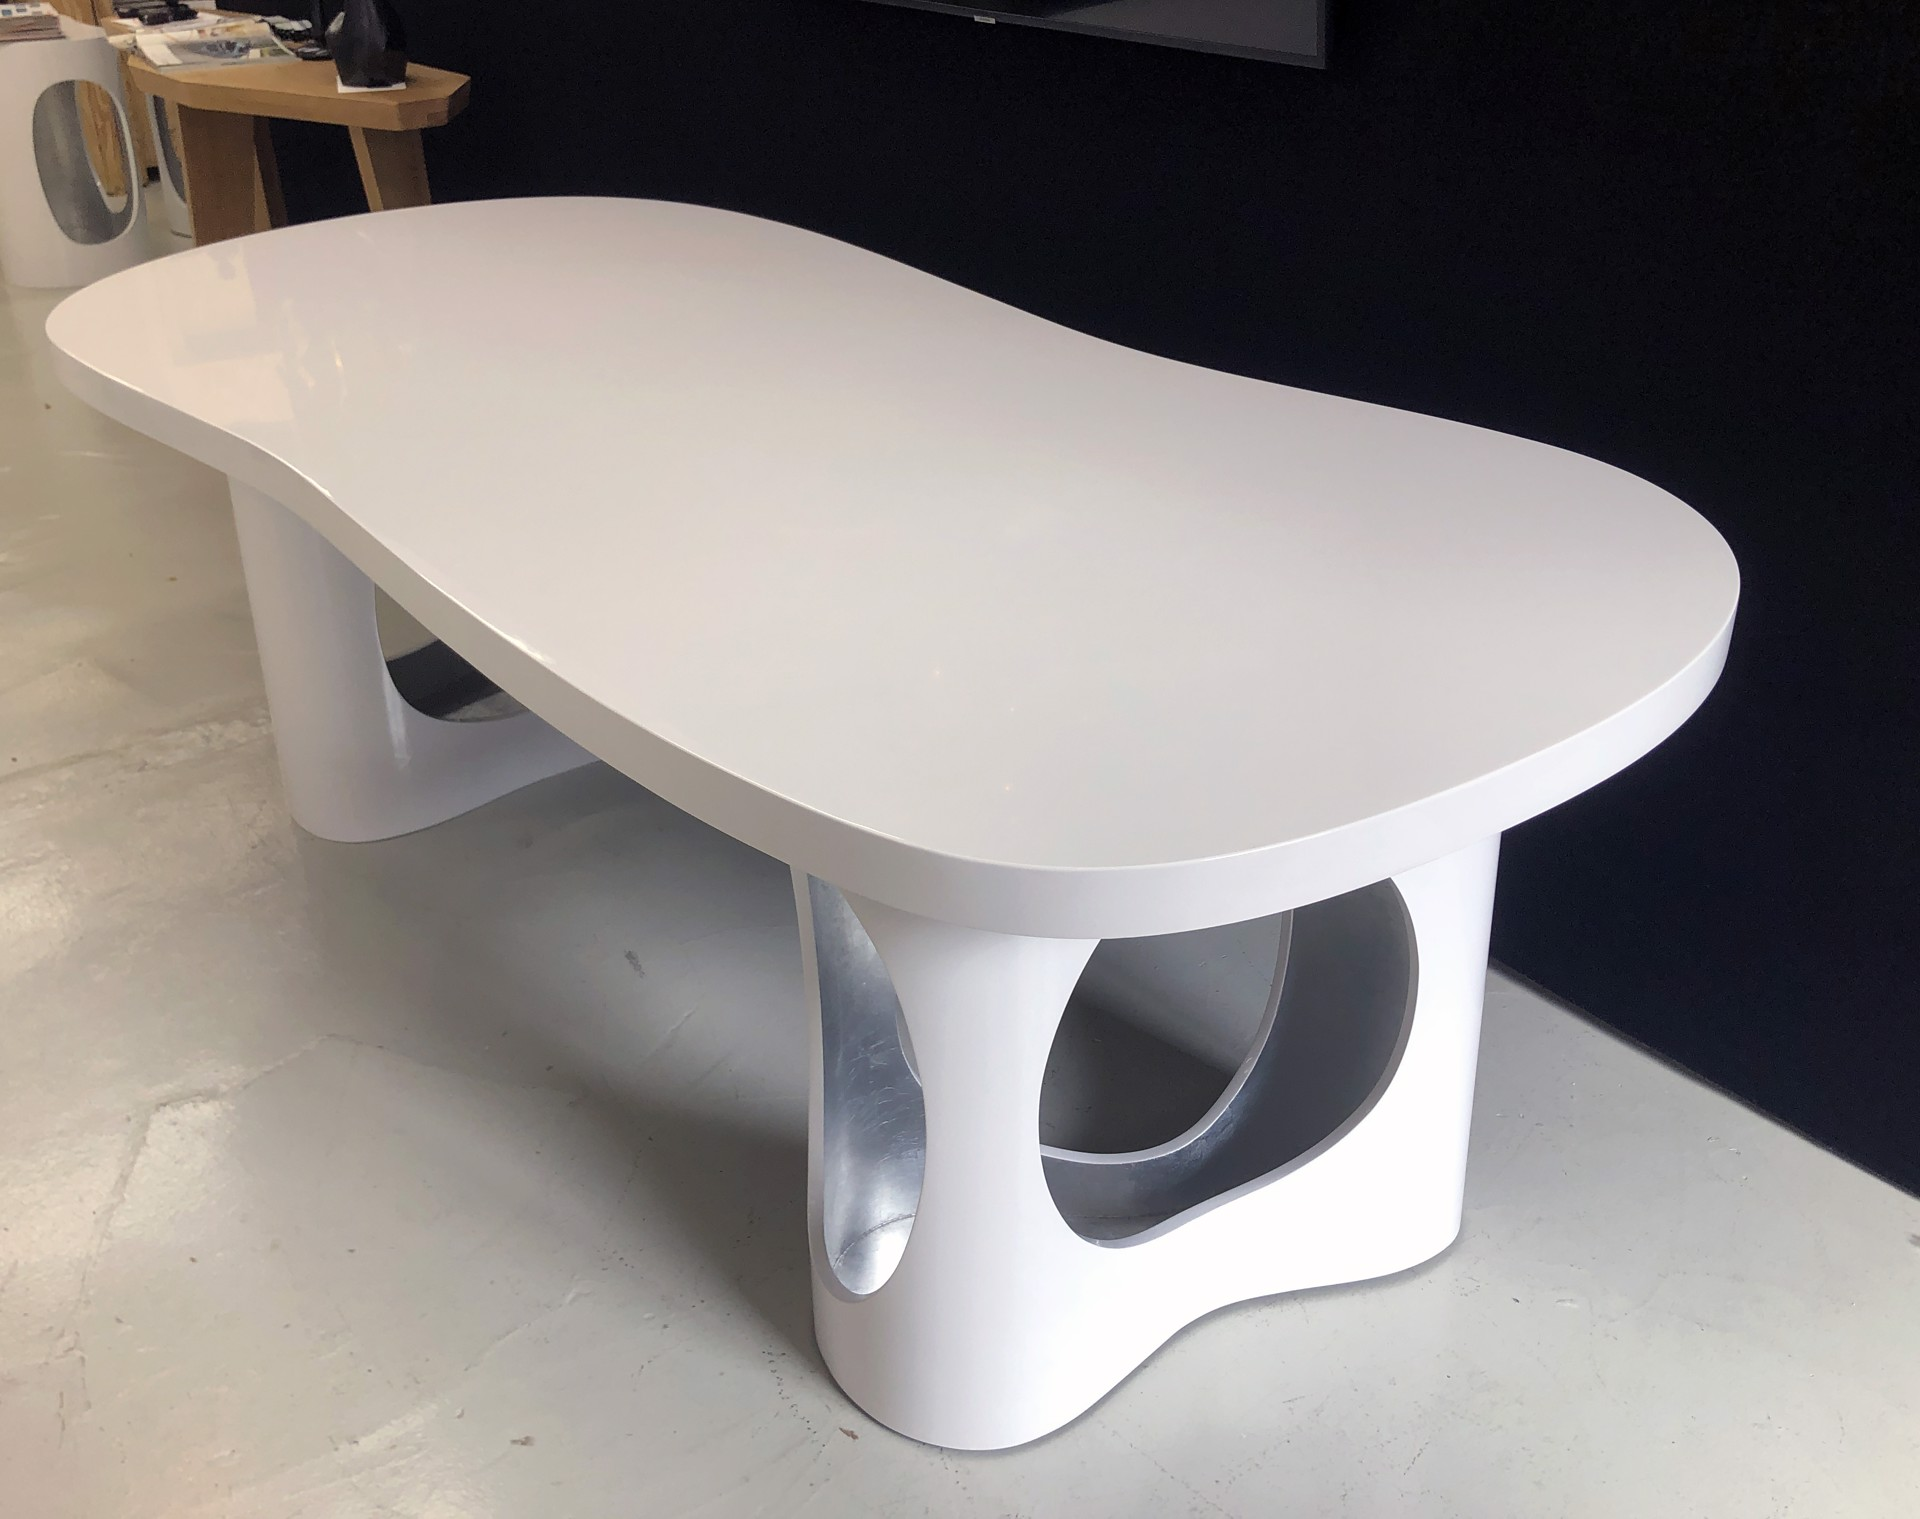 """Cloud"" Desk or Dining table  by Jacques Jarrige"